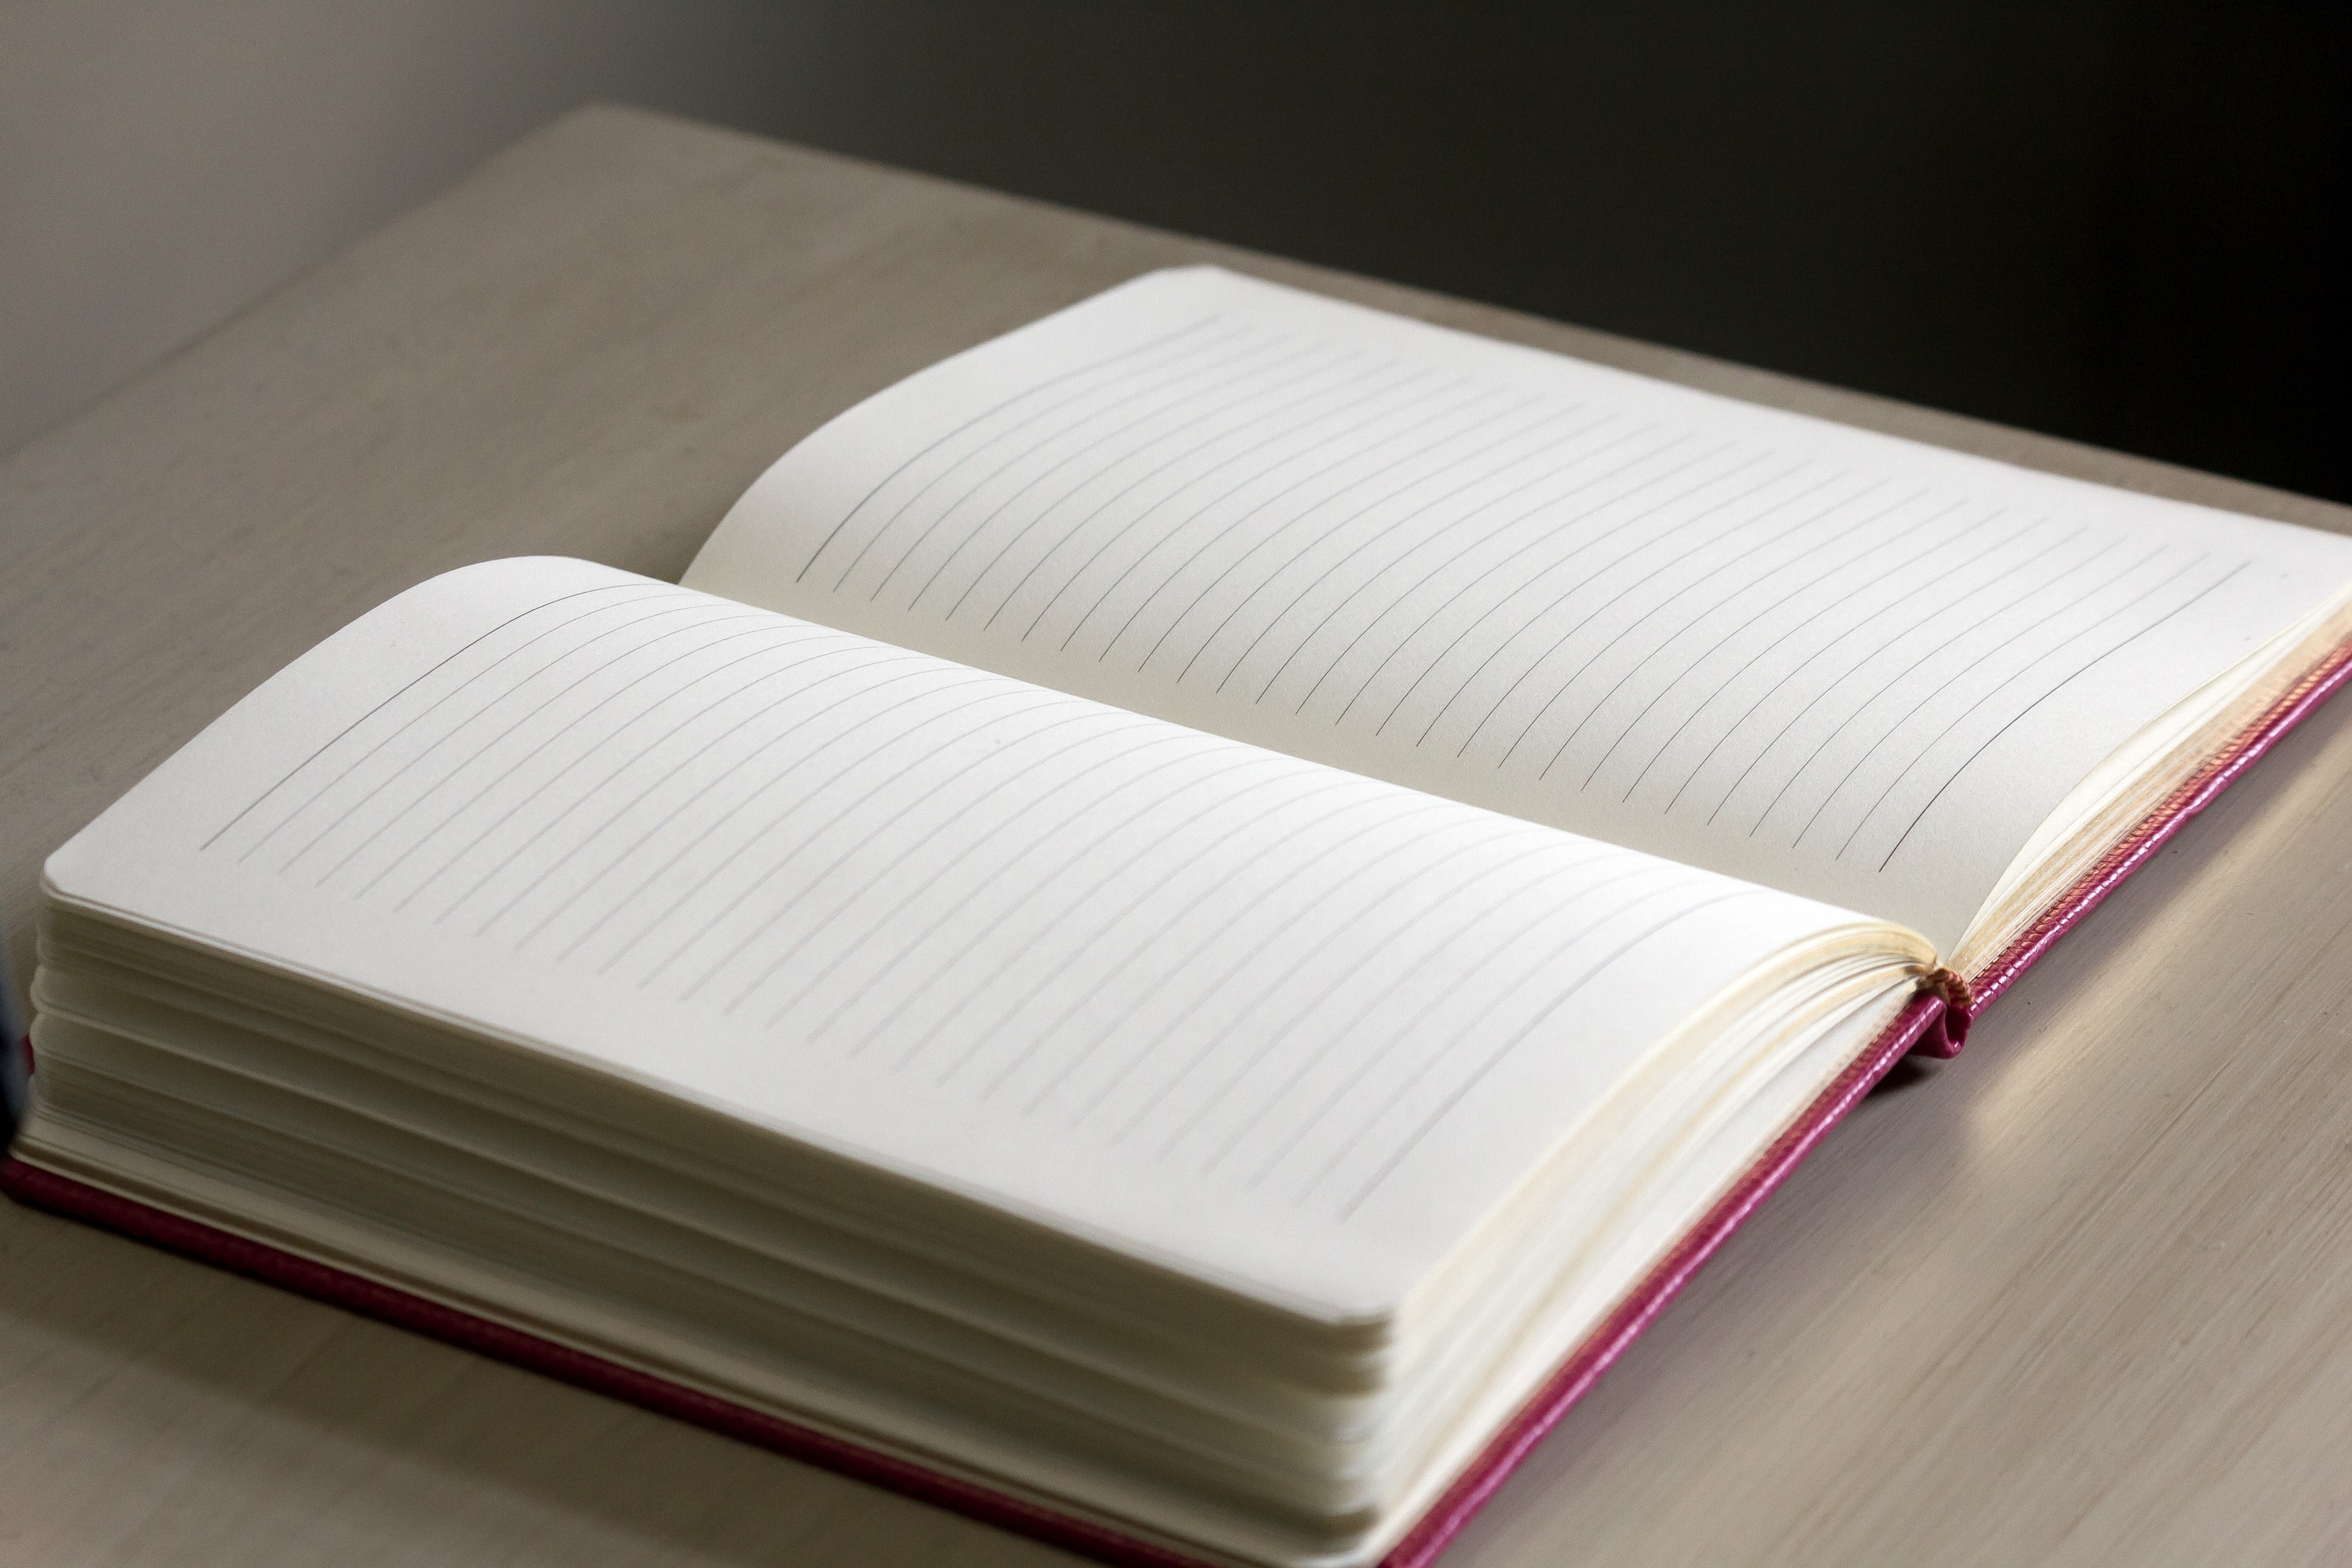 White lined notebook on gray table photo